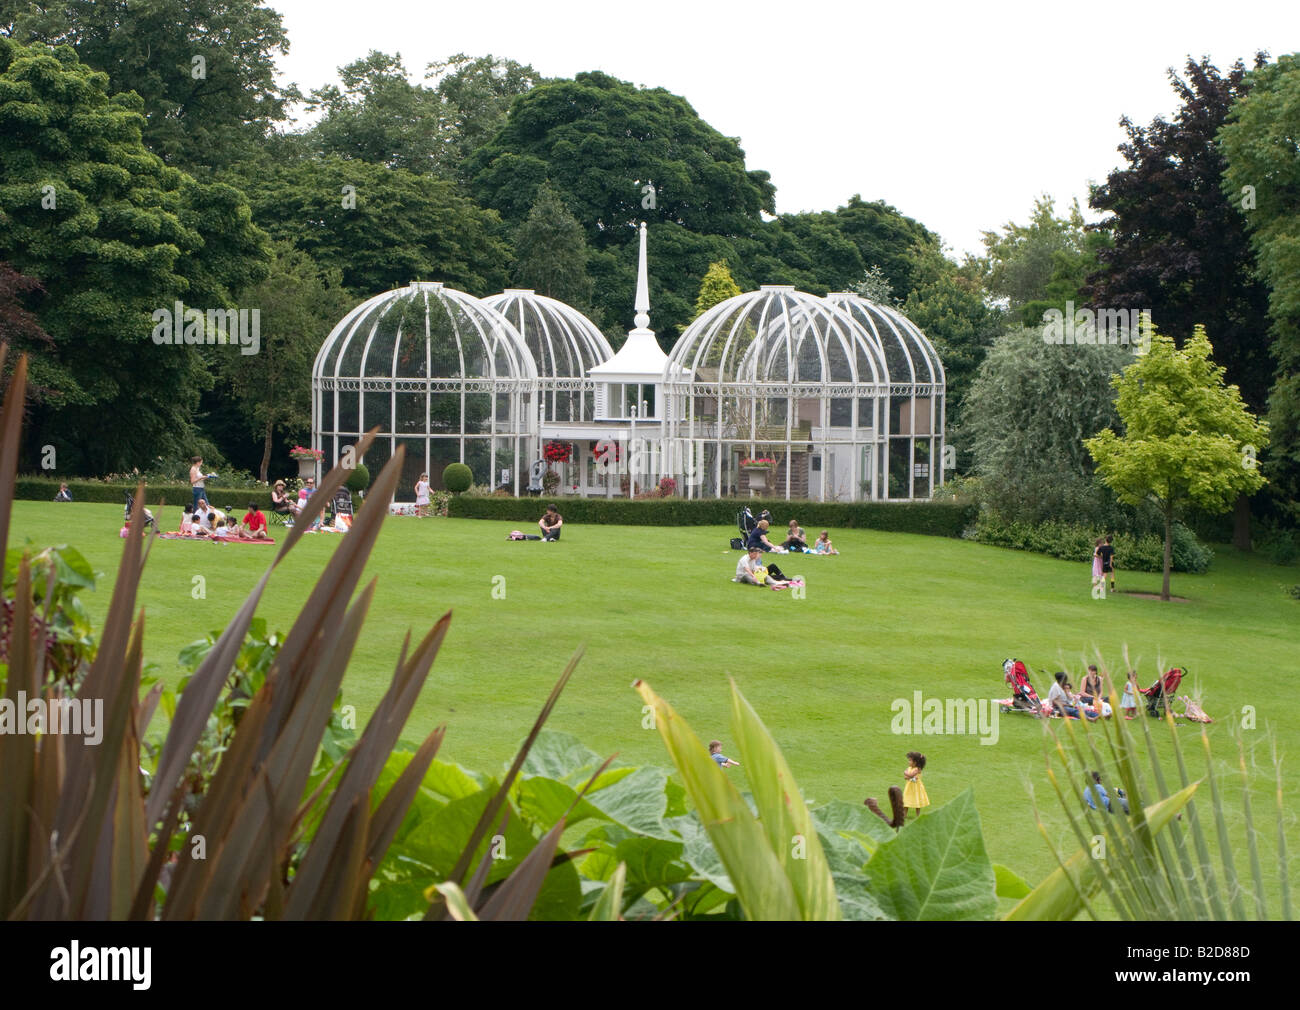 Incroyable A View Of The Famous Lawn Aviary At Birmingham Botanical Gardens ENgland UK